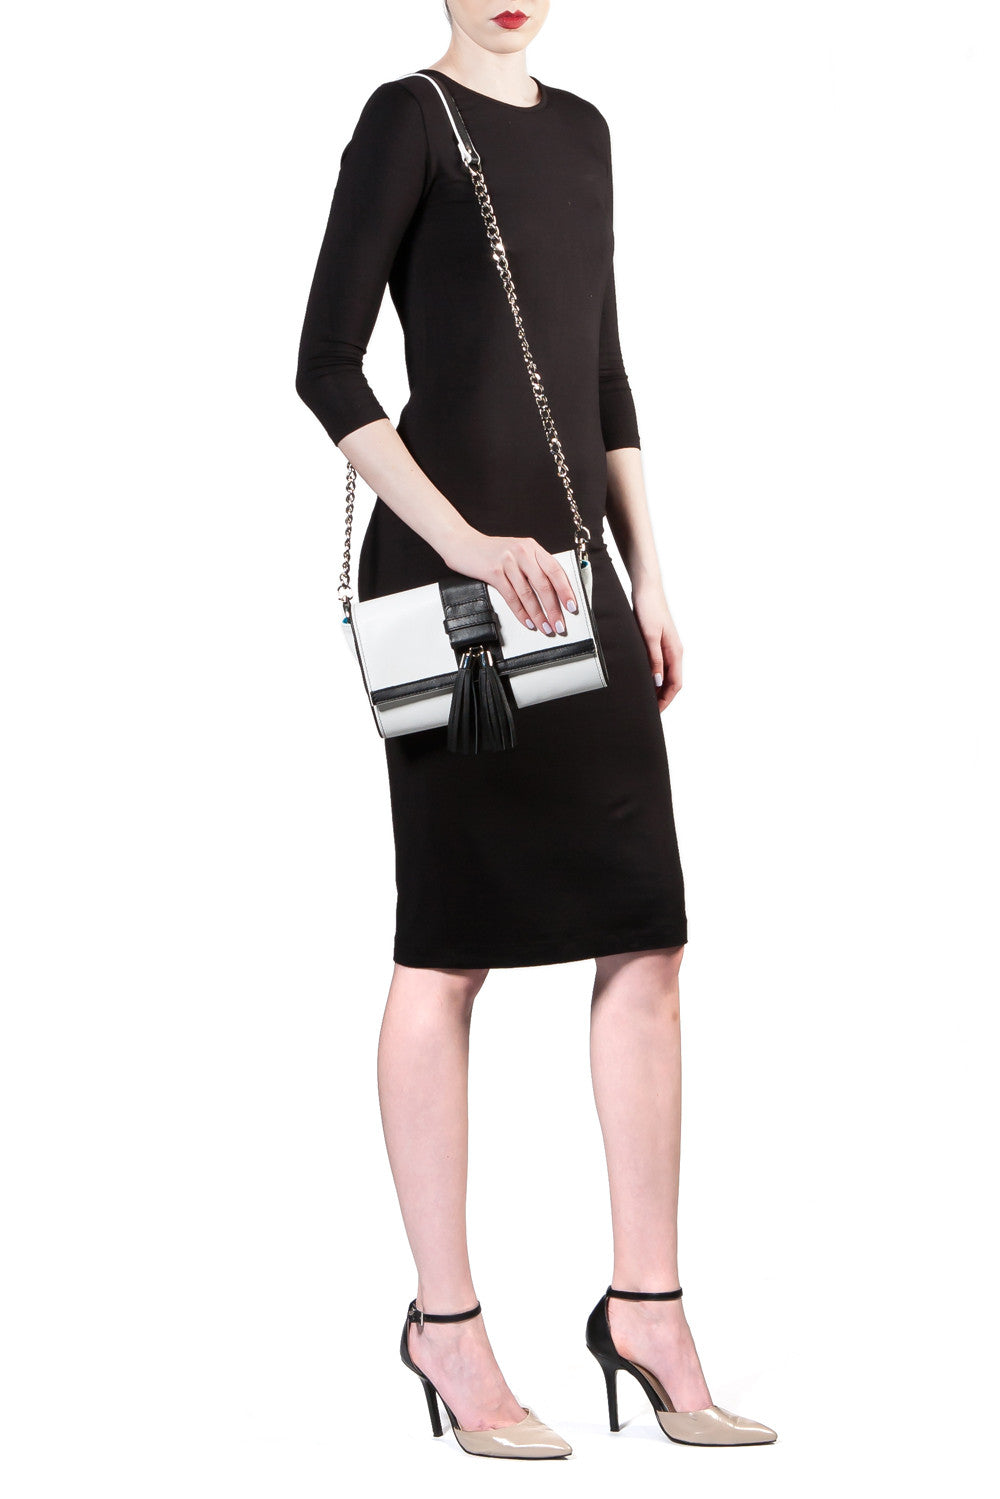 Black and White Tasseled 'Lauren' Small Shoulder Bag | Mel Boteri | Shoulder Strap View